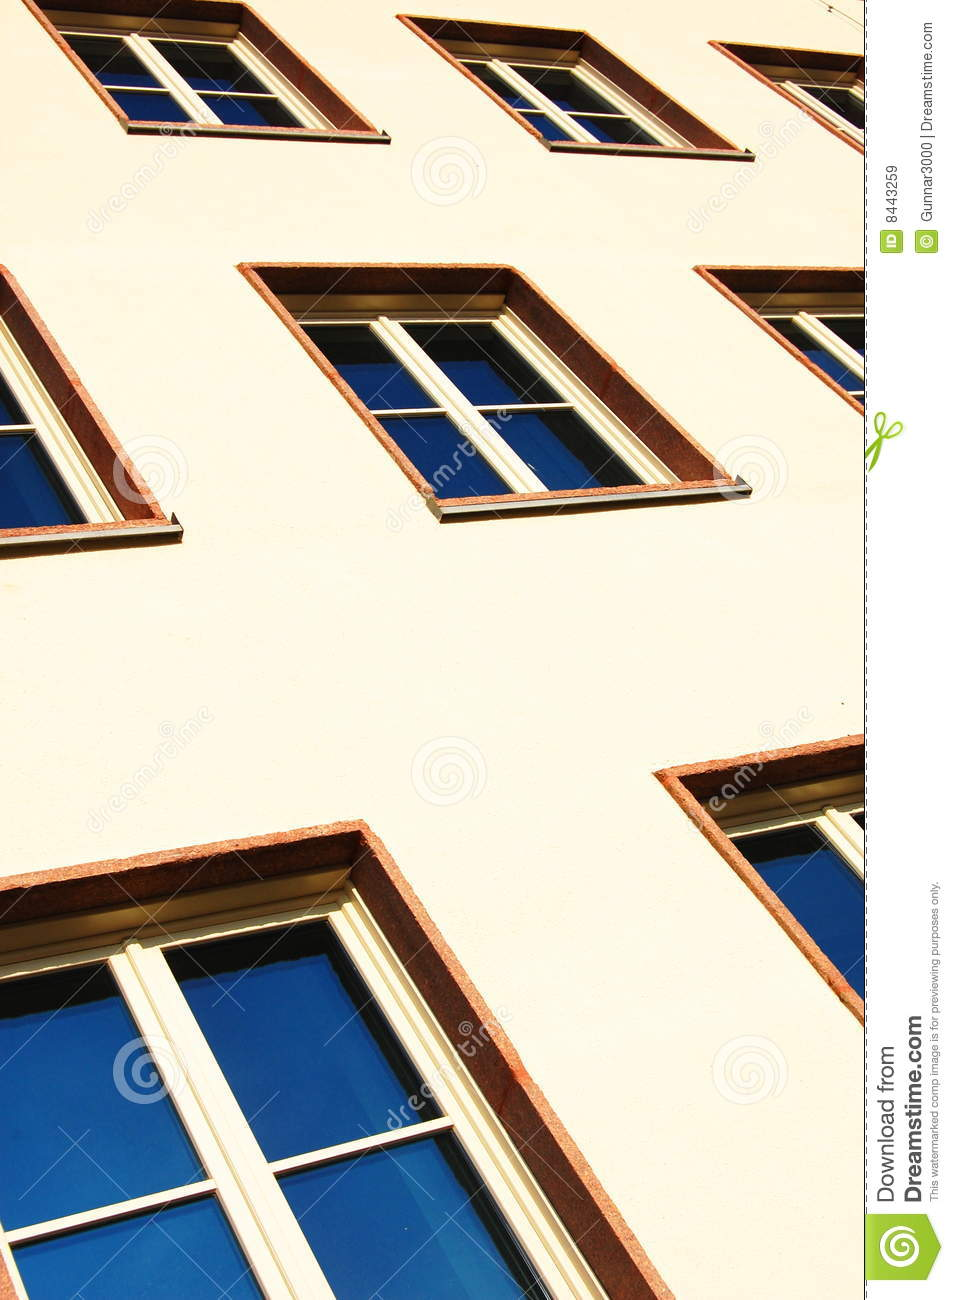 Facade of apartment house